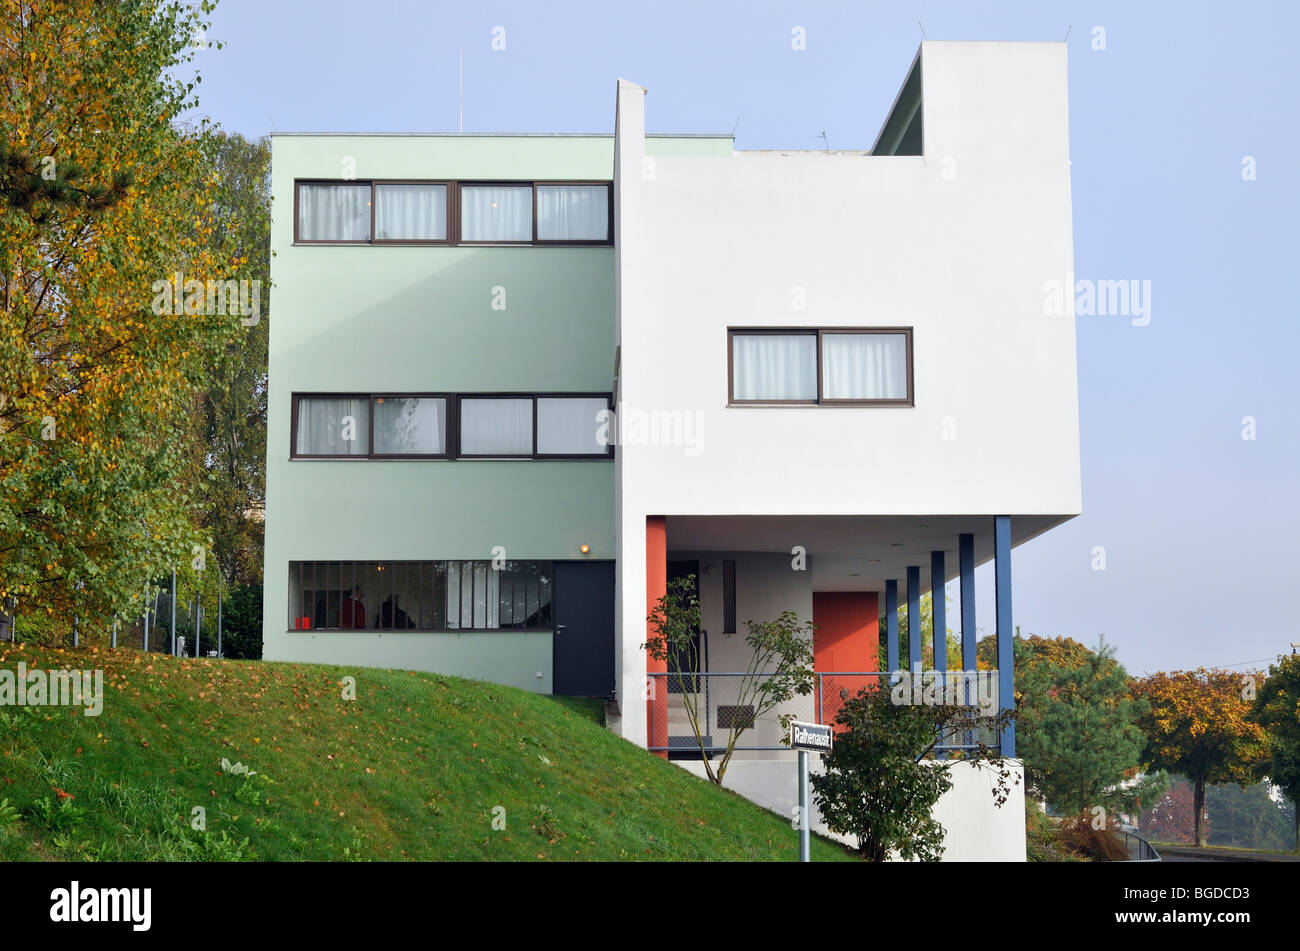 weissenhofsiedlung weissenhof settlement two family house stock photo 27340015 alamy. Black Bedroom Furniture Sets. Home Design Ideas